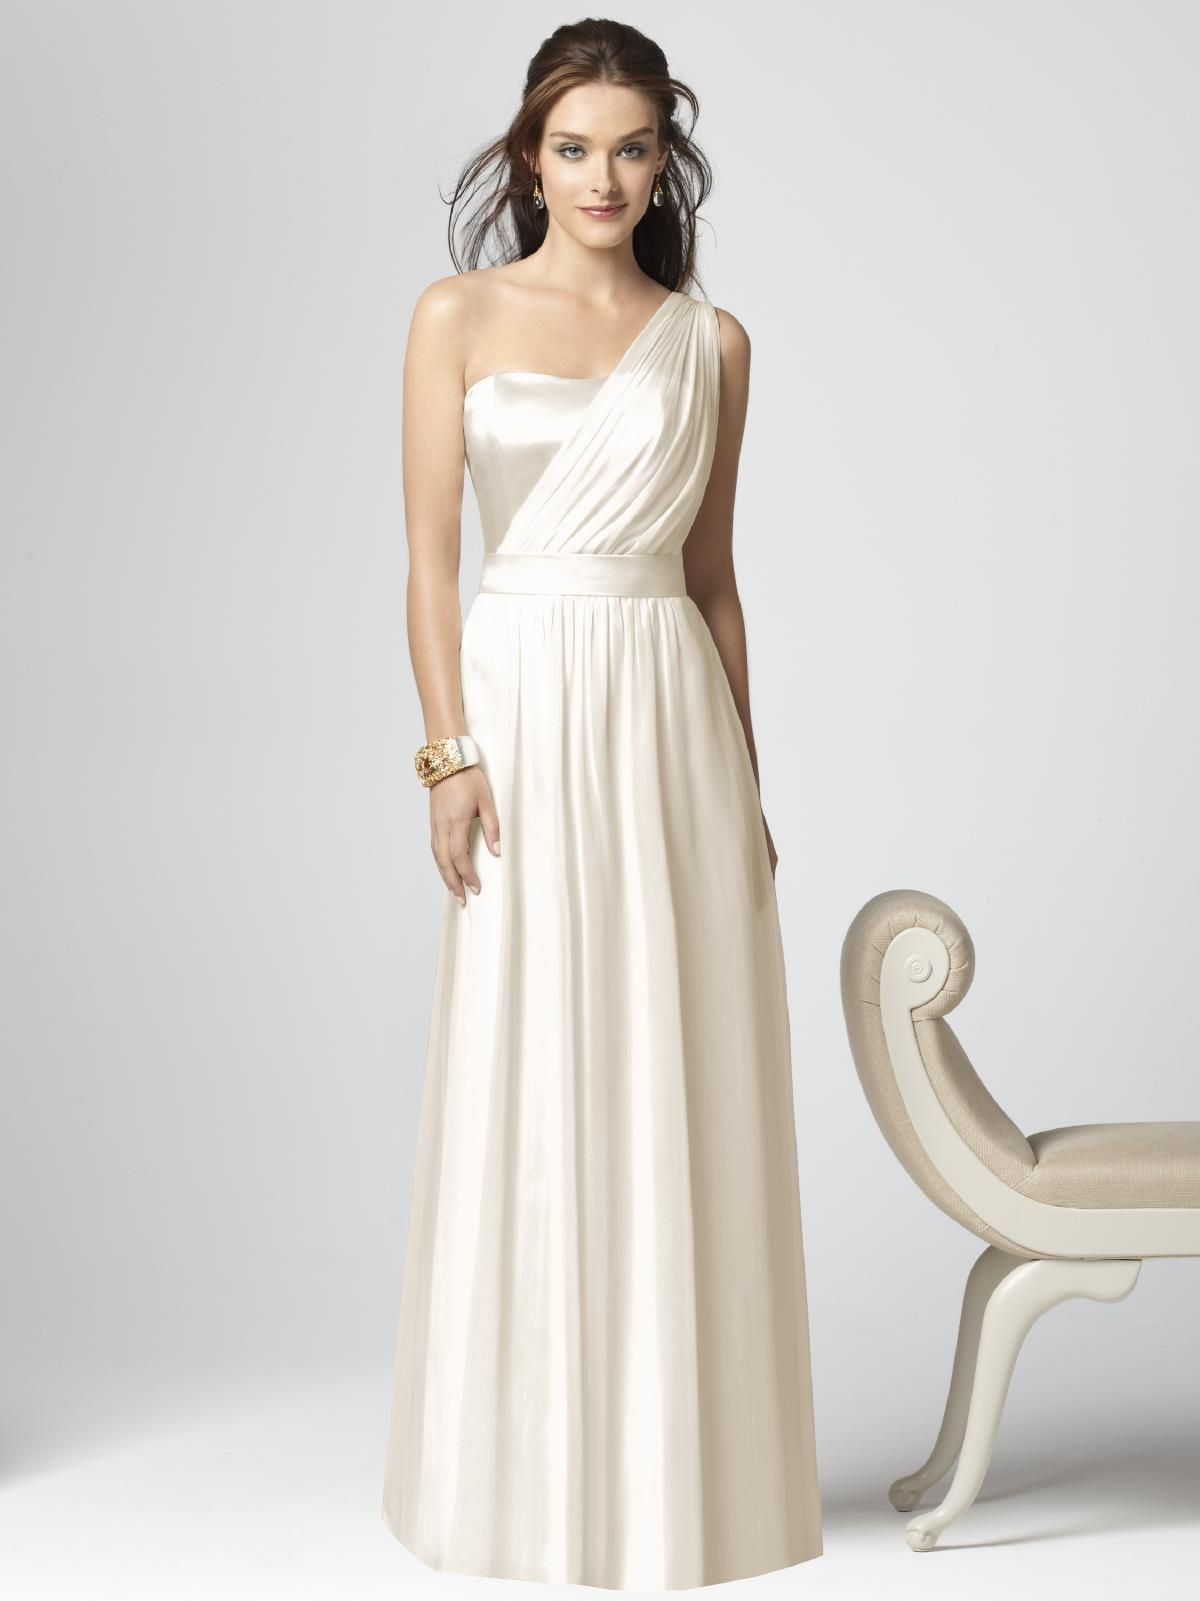 Love this greek inspired gown | Fashion | Pinterest ...